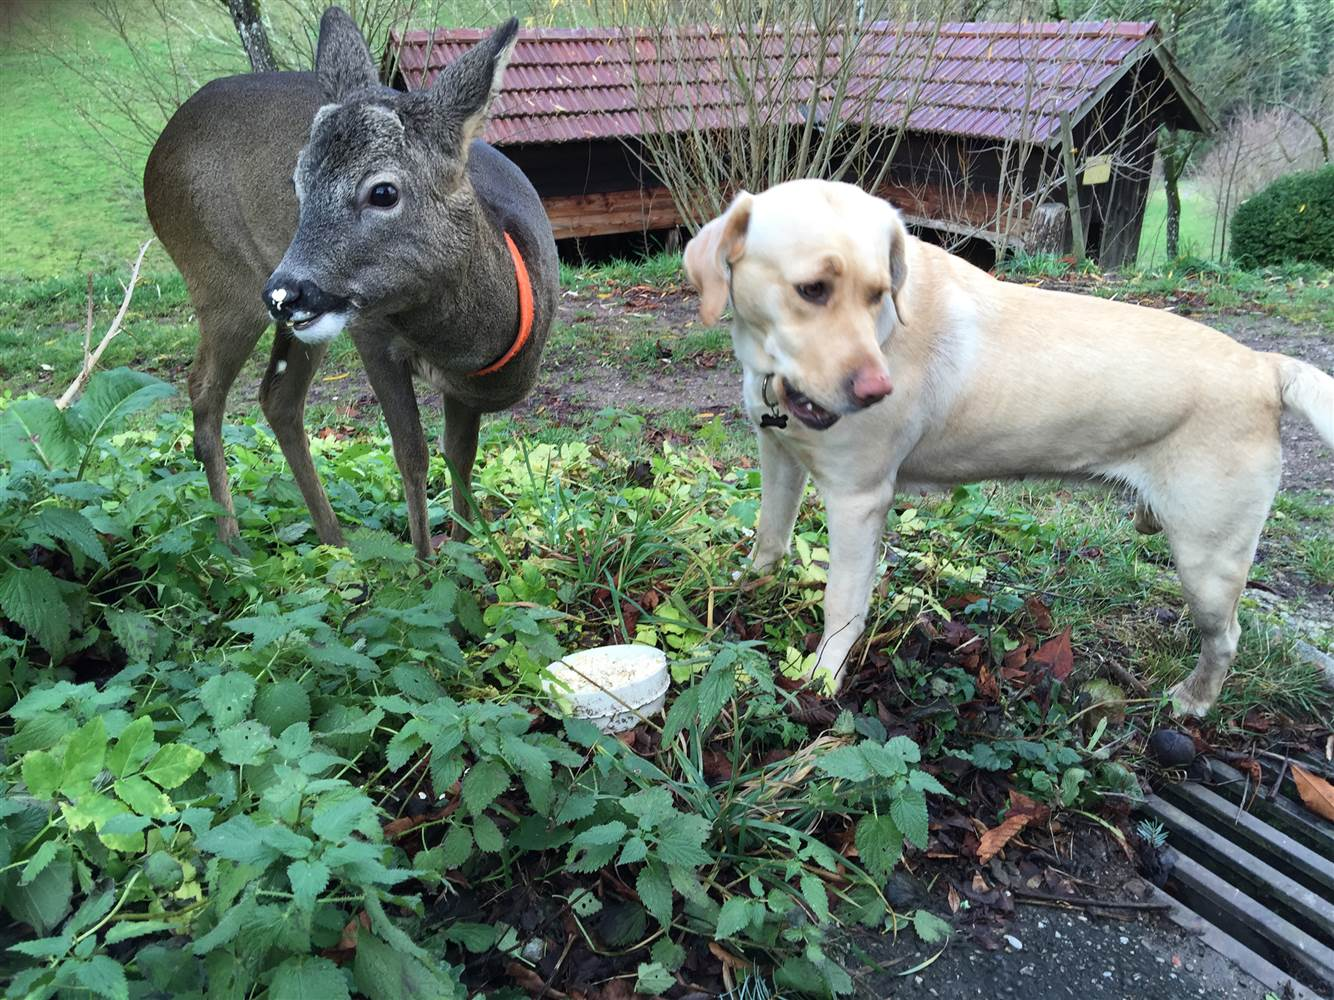 labrador and deer friendship